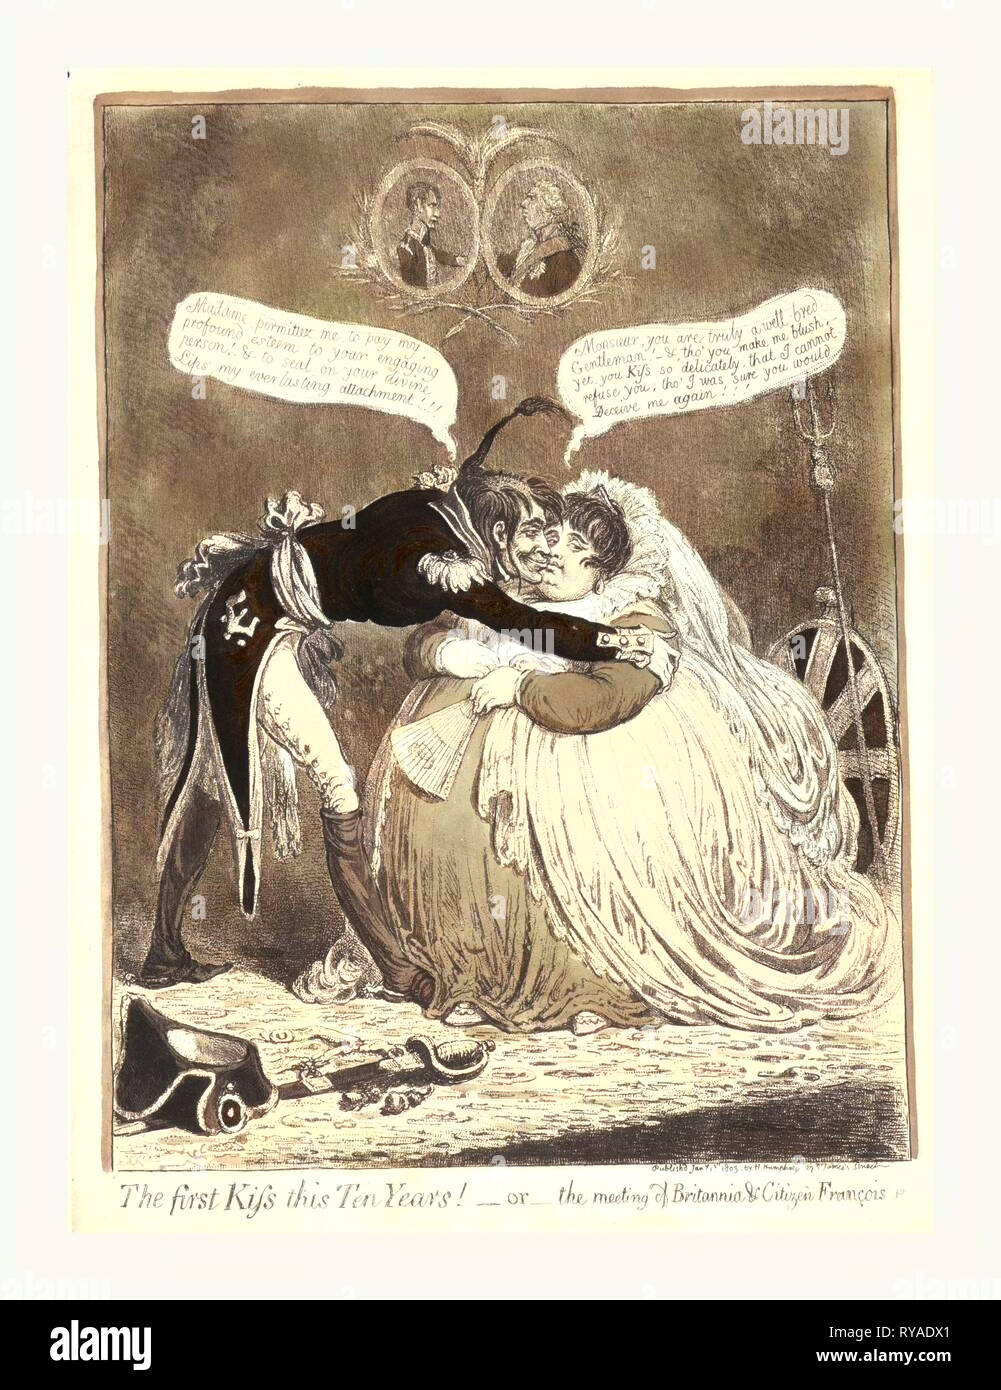 The First Kiss This Ten Years! - or - the Meeting of Britannia & Citizen Francois, Gillray, James, 1756 1815, Engraver, [London]: H. Humphrey, 1803., 1 Print : Etching, Hand-Colored., a Tall, Thin, French Officer Kissing a Fat, Richly Dressed, Seated Britannia. His Hat and Sword Lay on the Carpet. Britannia's Shield and Trident Rest on the Wall behind Her Chair. Above Them Are Portraits of George III and Napoleon, Facing Each Other - Stock Image